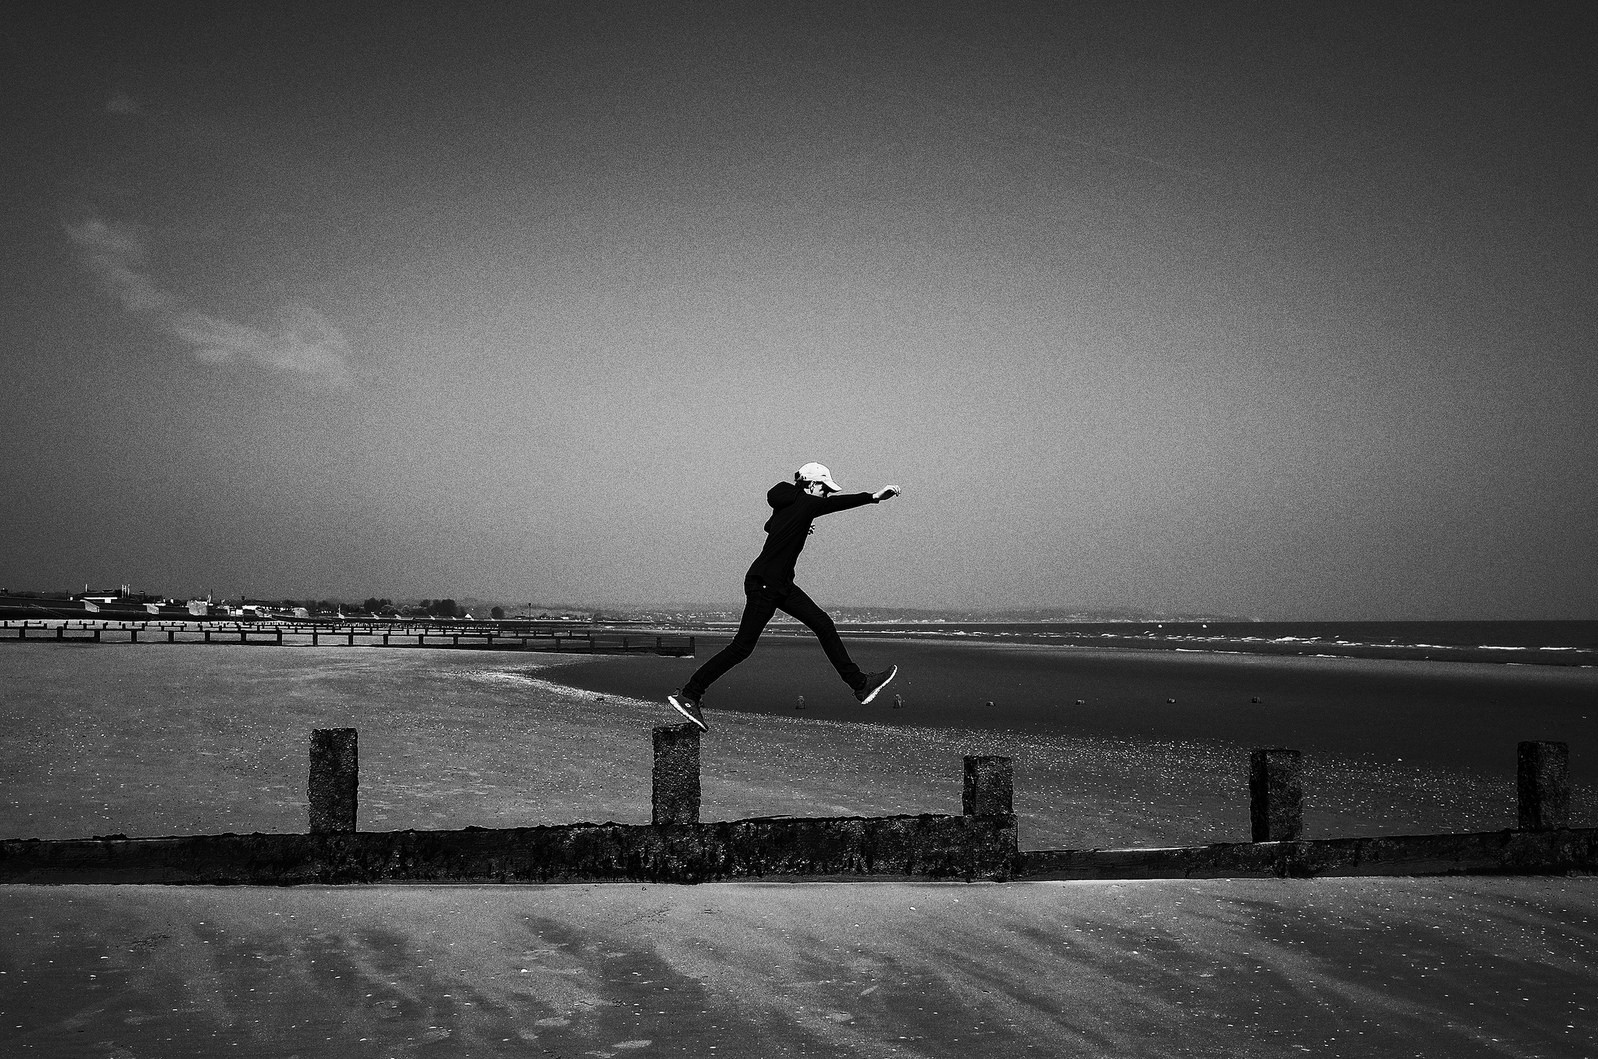 A man jumps along a pier on the shore